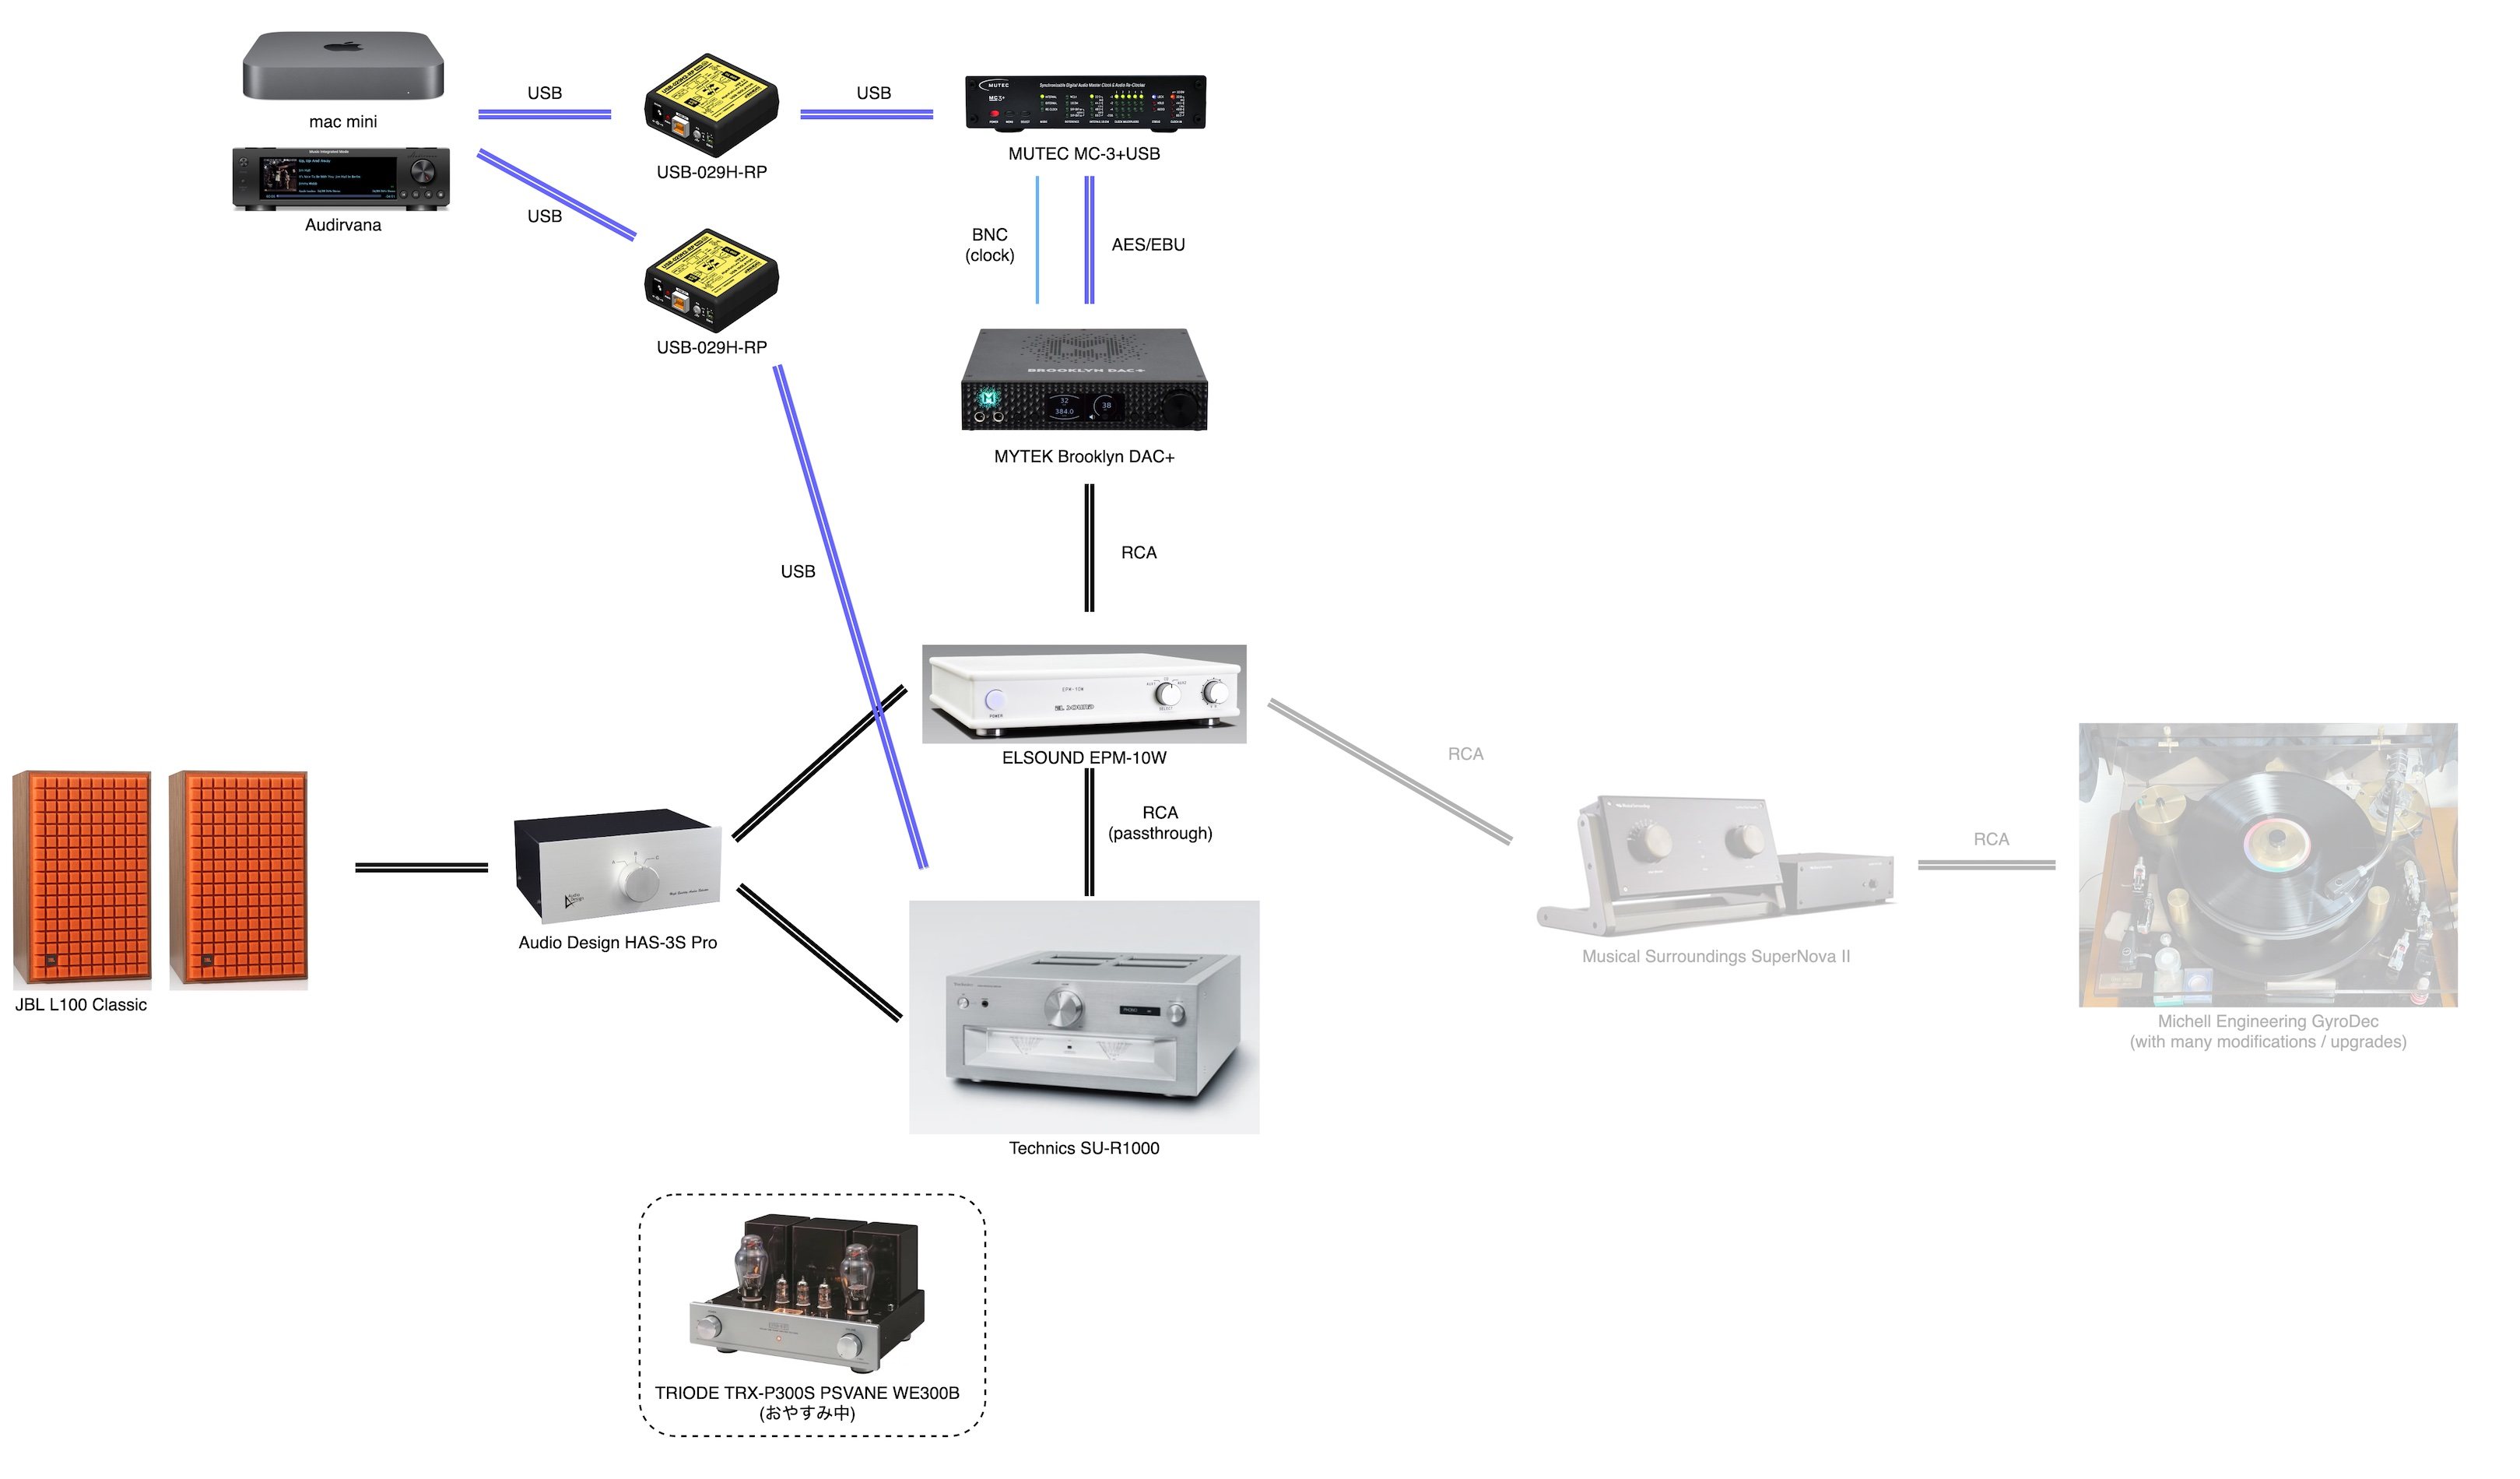 System Configuration as of June 21, 2021